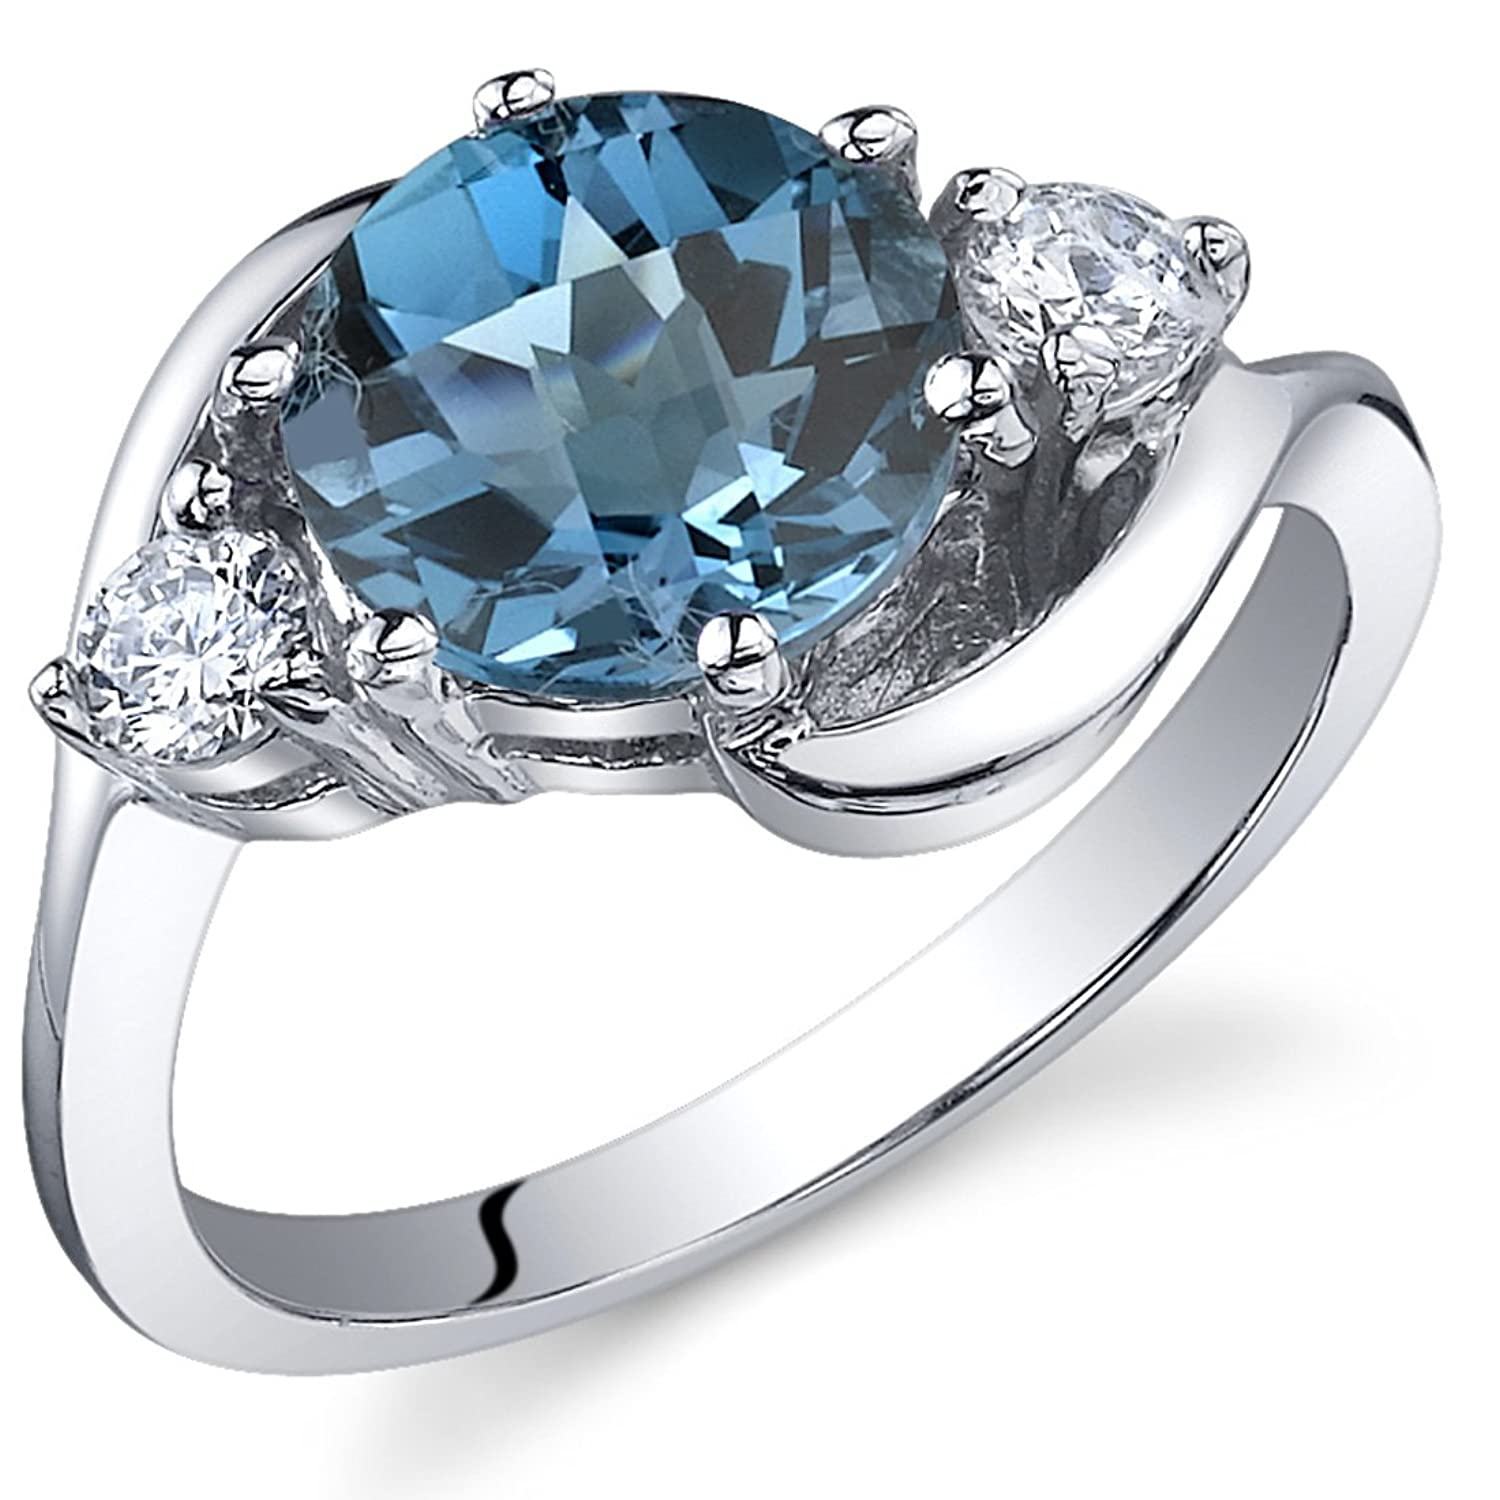 amazon dp ring jewelry diamond style com london blue silver to topaz solitaire sterling stone rings sizes carats